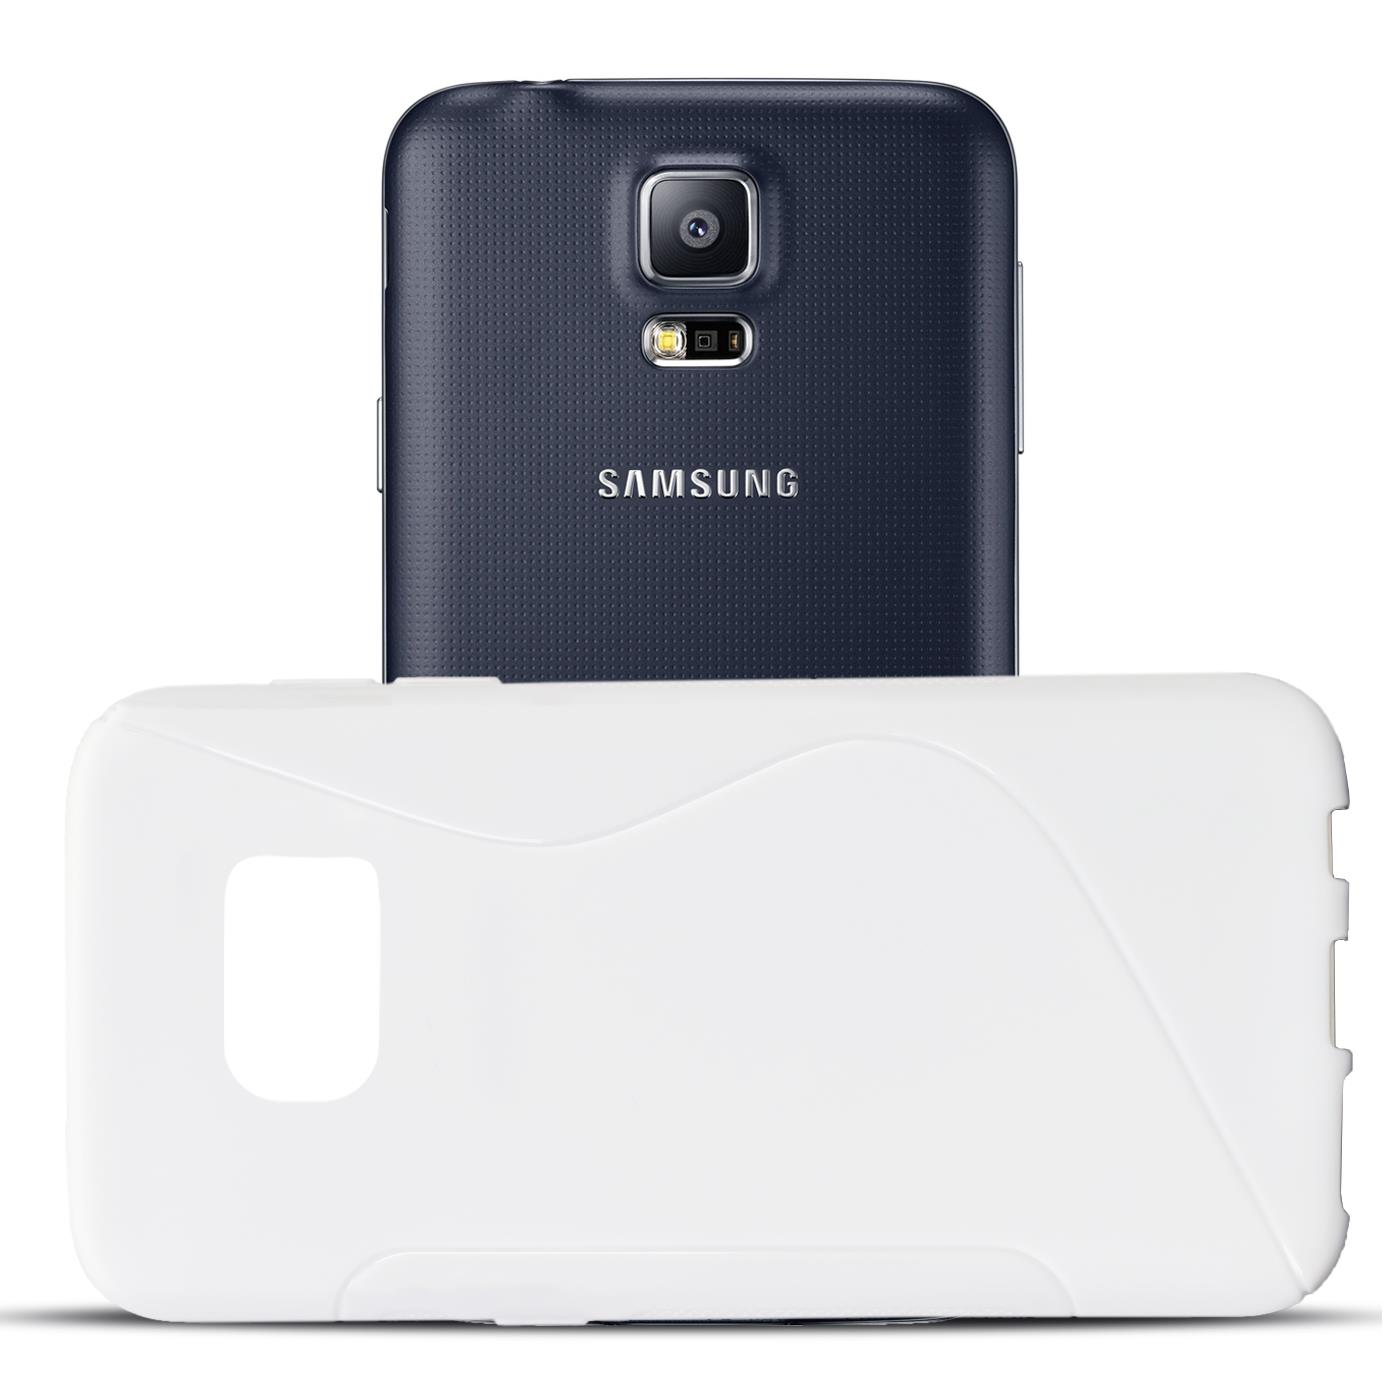 Samsung-Galaxy-s5-Neo-Silikon-Gel-S-Line-Case-Cover-Ultra-Thin-Slim-Back-Bumper Indexbild 30